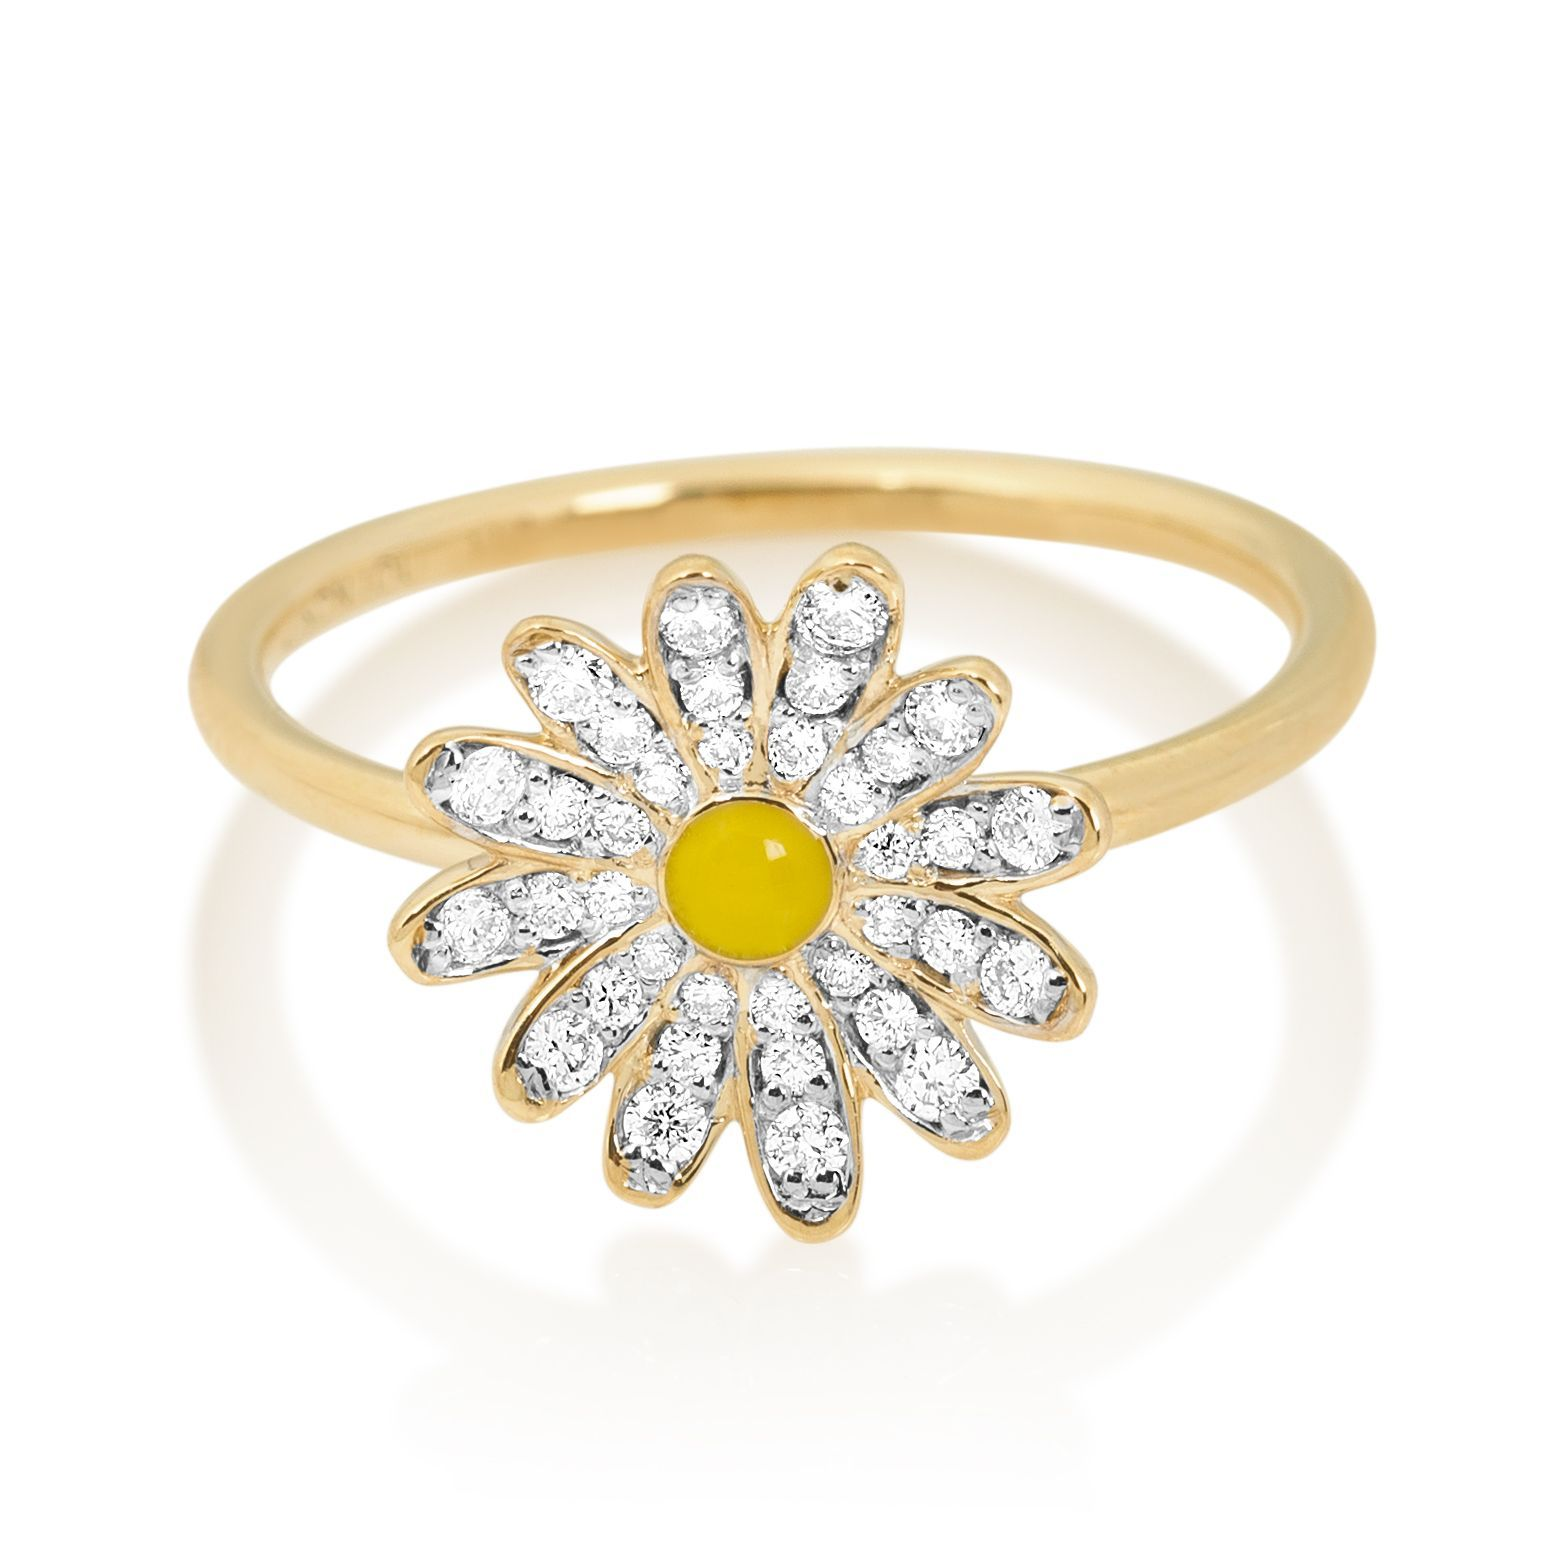 emma jewels ring chapman gallery diamond jewelry lyst daisy flower white in